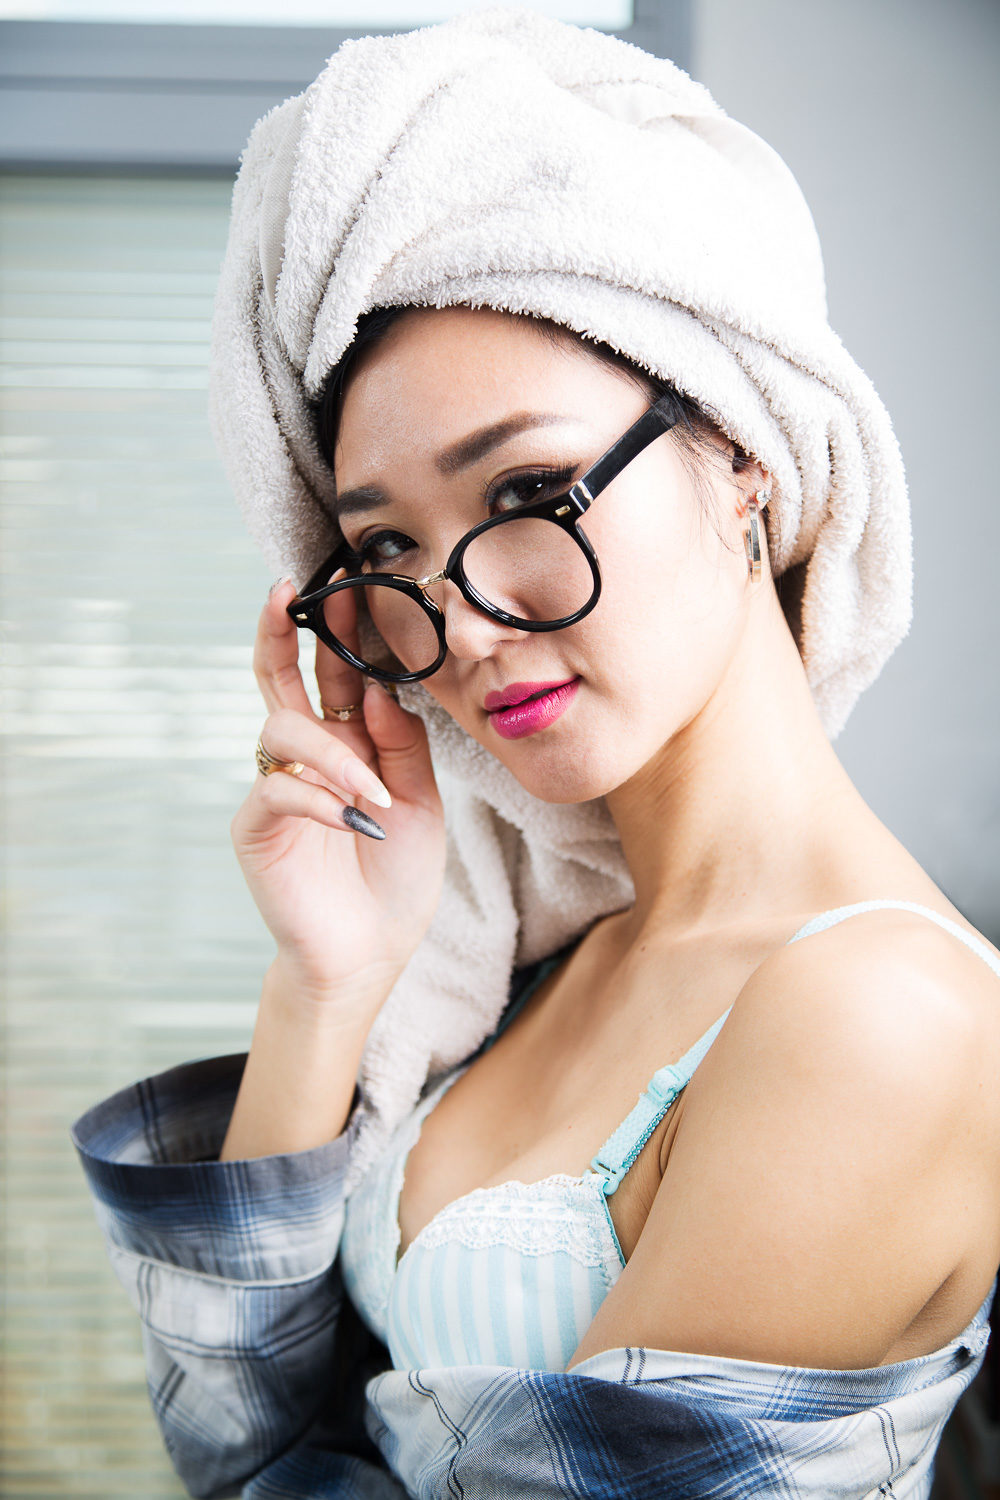 Boudoir - Yuri with hair towel